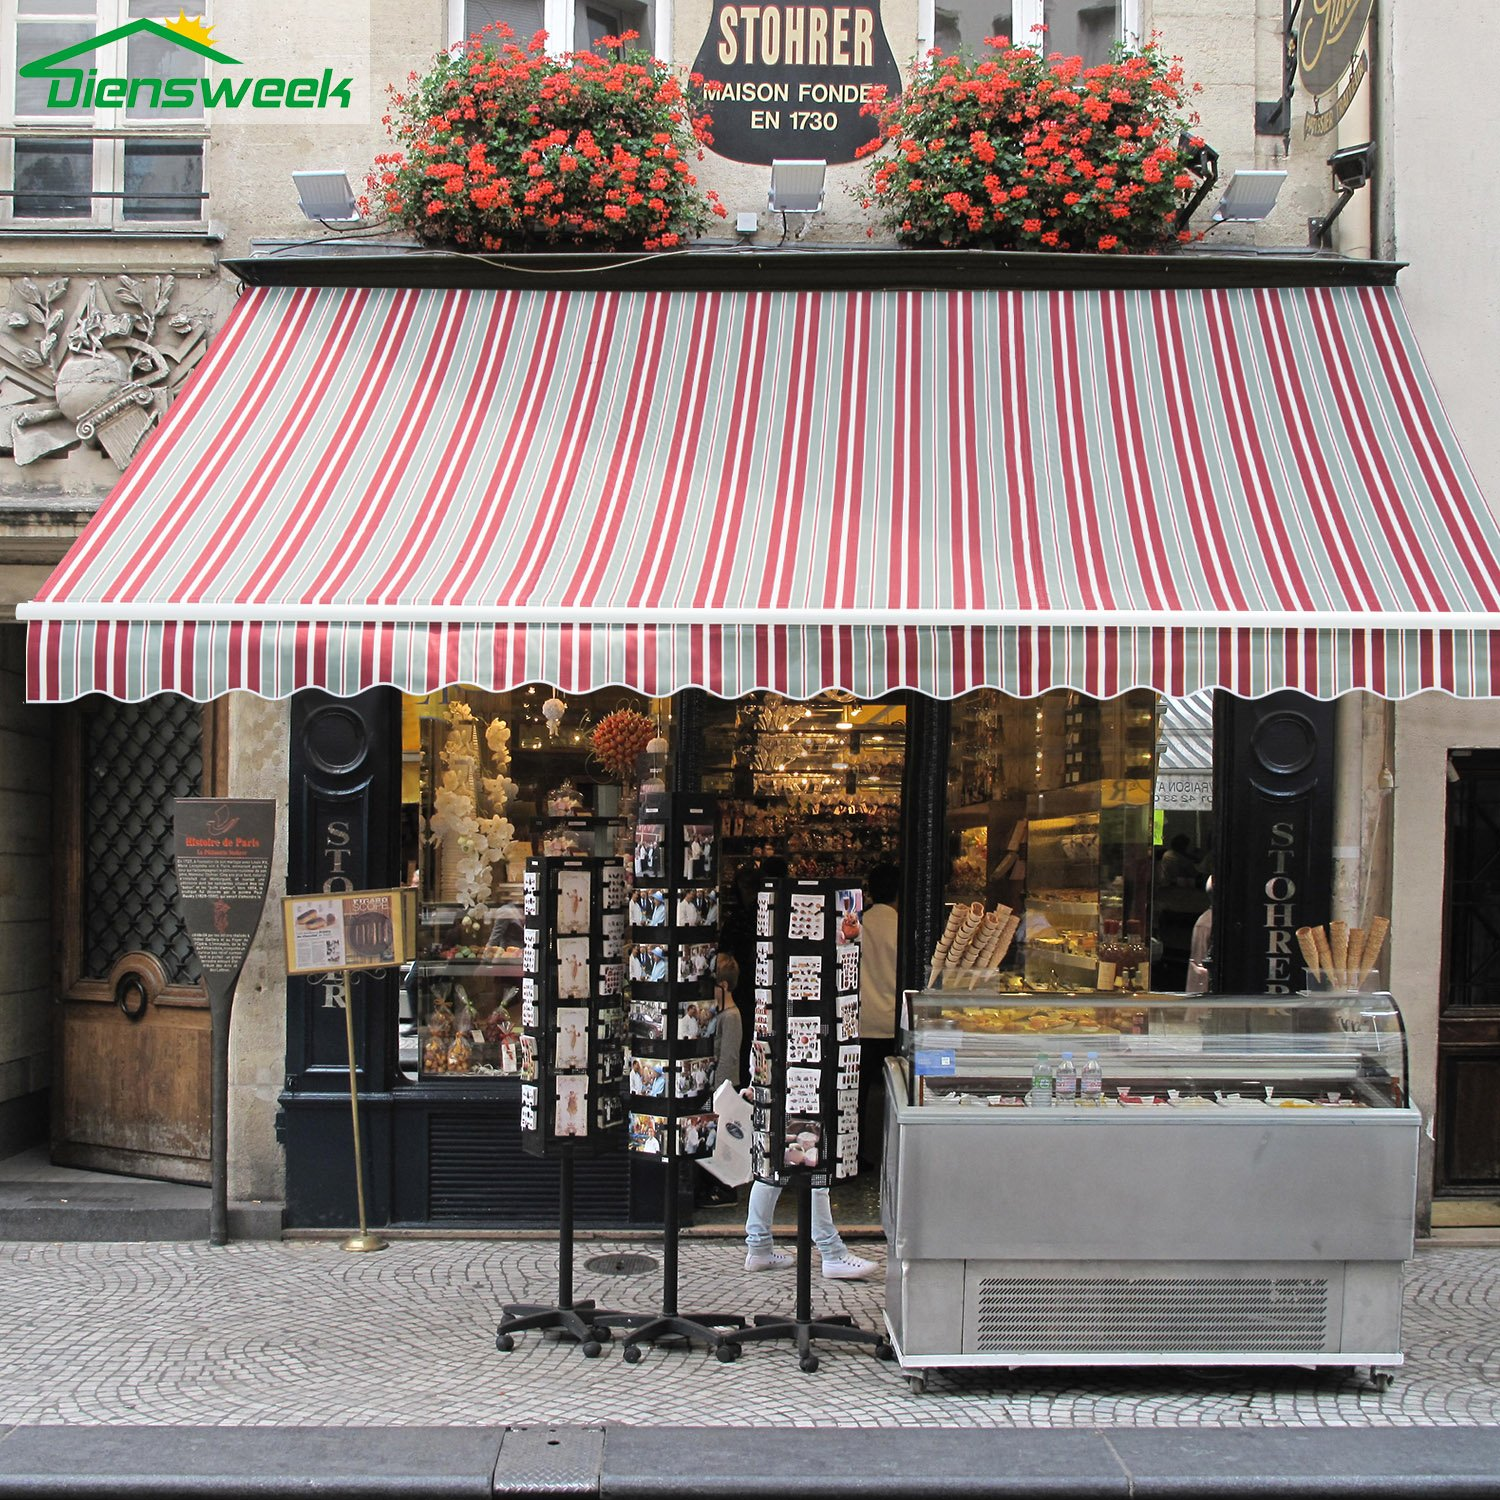 Diensweek 12'x8' Patio Awning Retractable Manual Commercial Grade,Quality 100% Acrylic Sun Shade Shelter -Deck Door Outdoor Canopy Balcony M100 Series 2 Years Warranty,(Red/Grey Stripes)